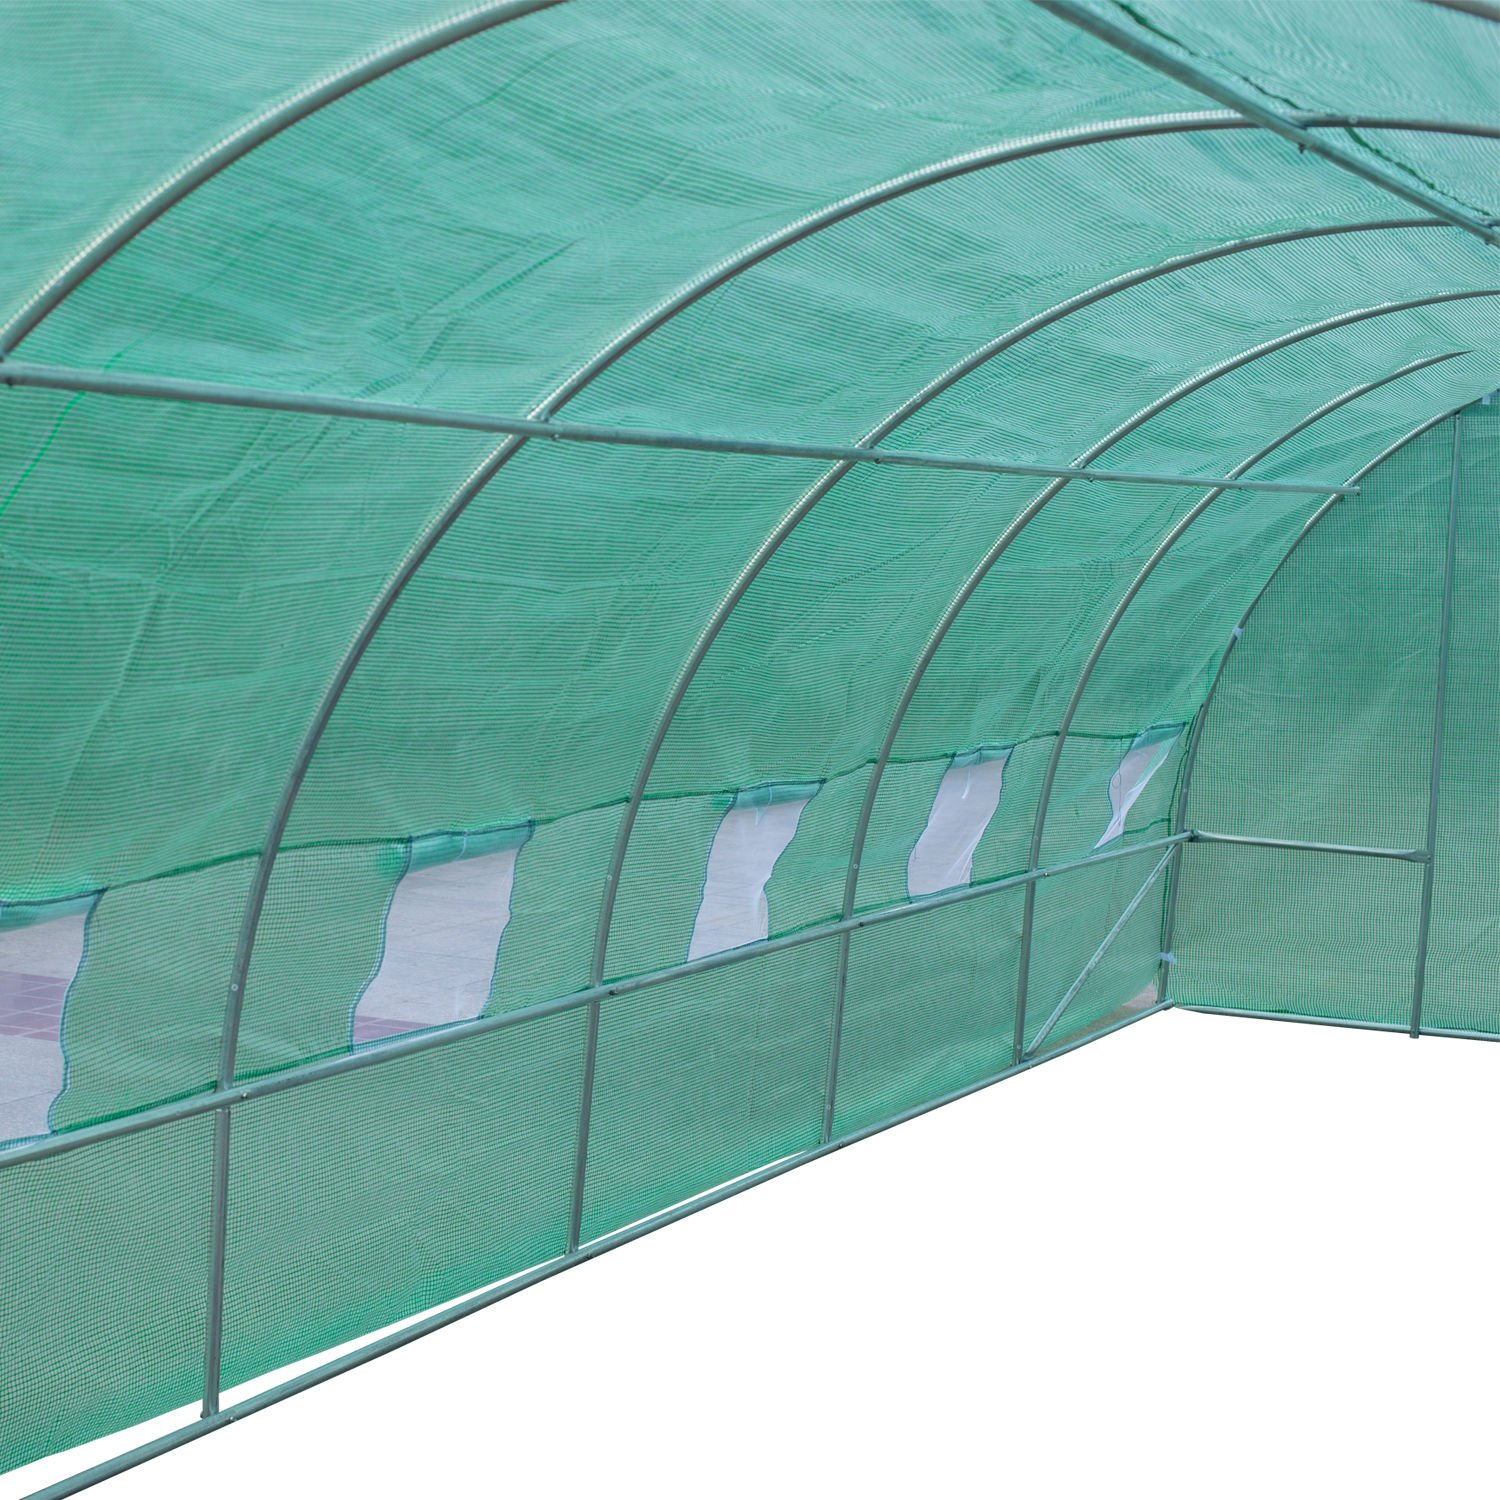 Outsunny 26' x 10' x 7' Portable Walk-in Garden Greenhouse - Deep Green by Outsunny (Image #5)